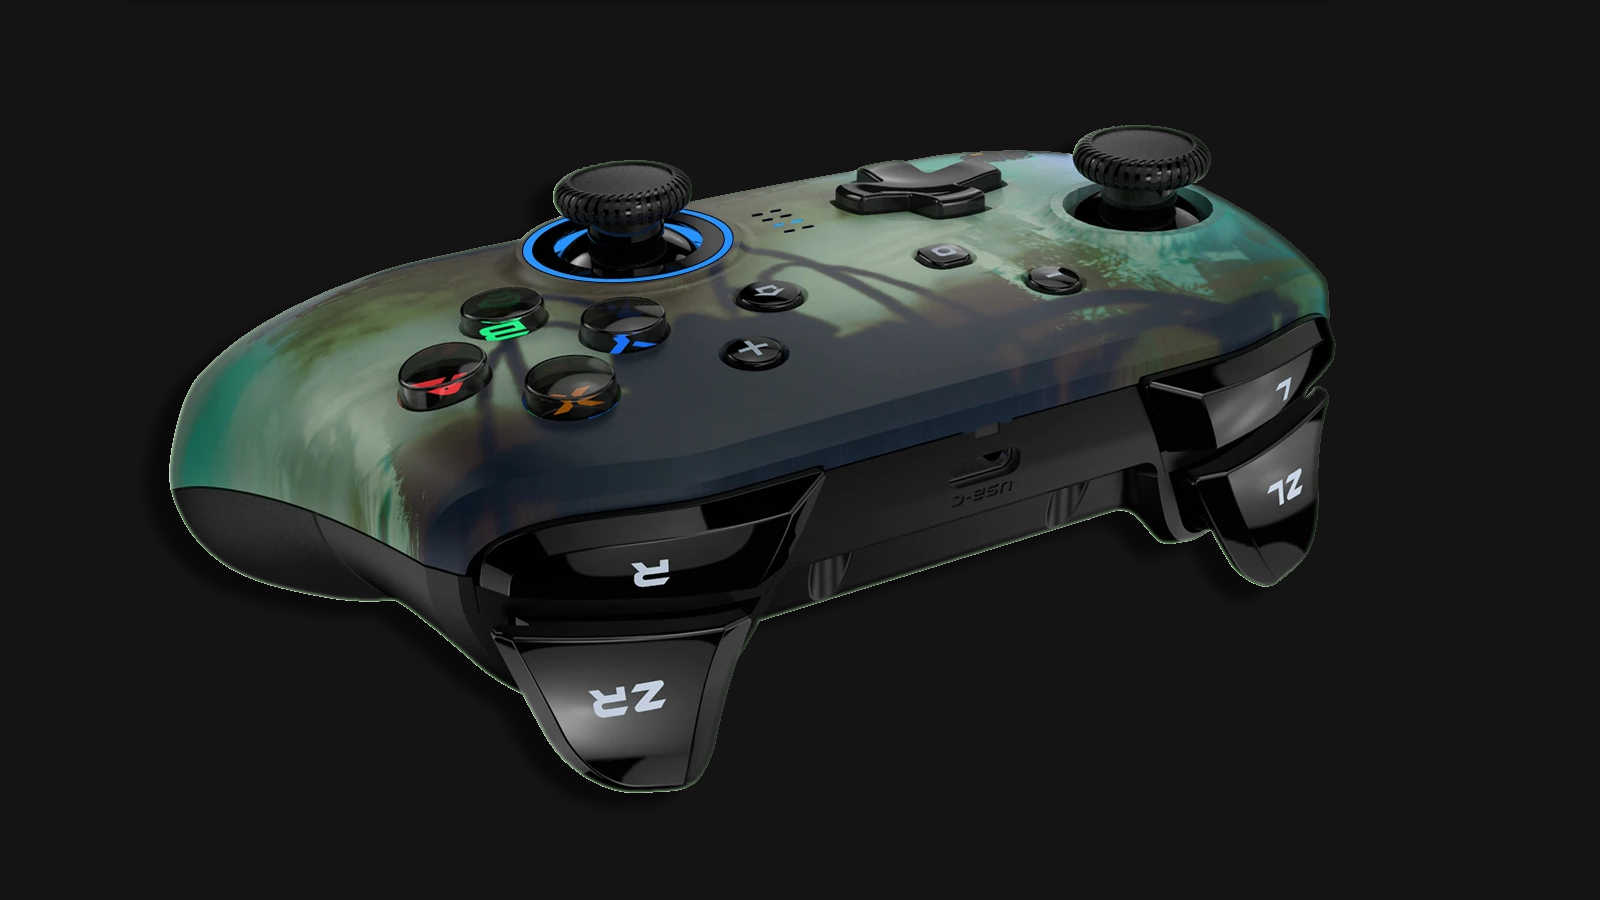 A top view of the controller can be seen.